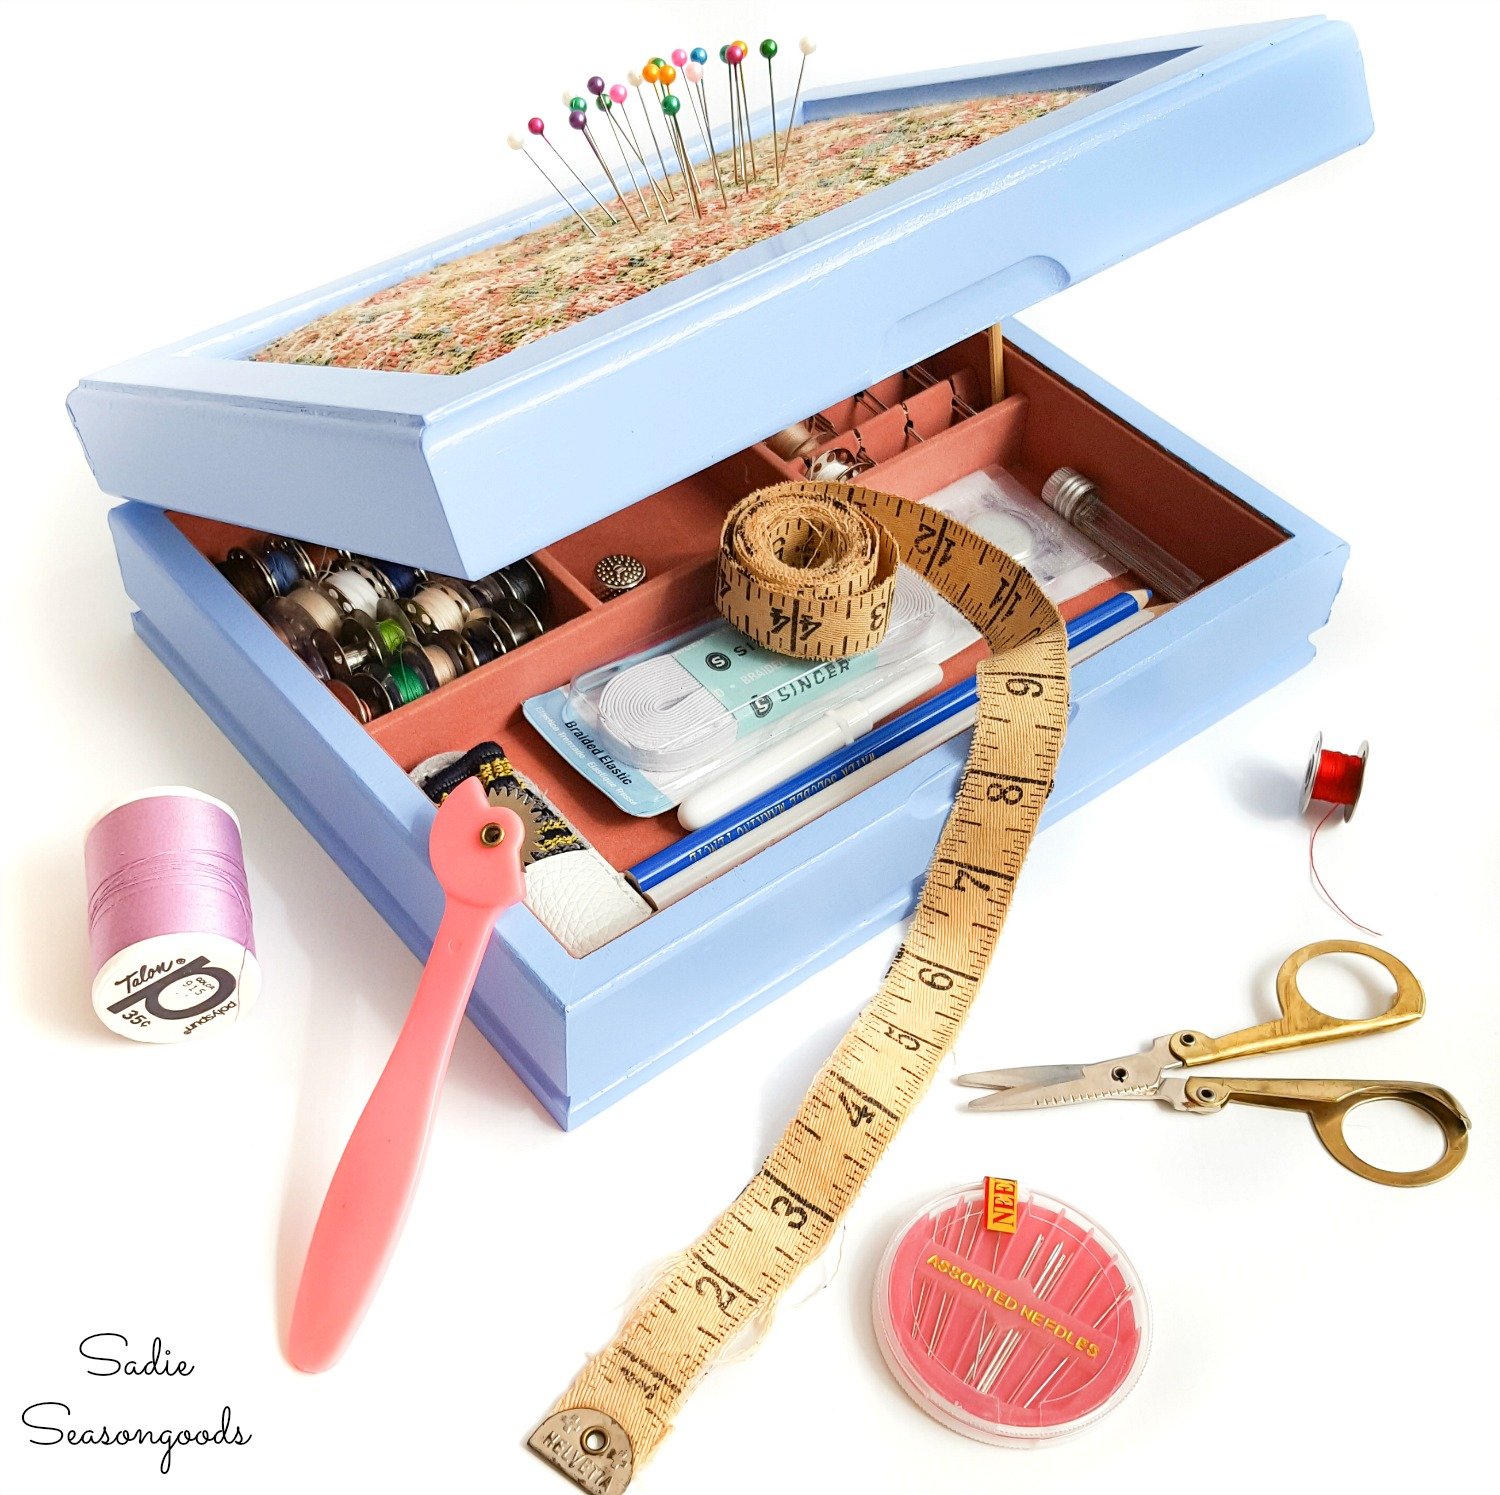 Upcycling a Vintage Jewelry Box as a Sewing Starter Kit